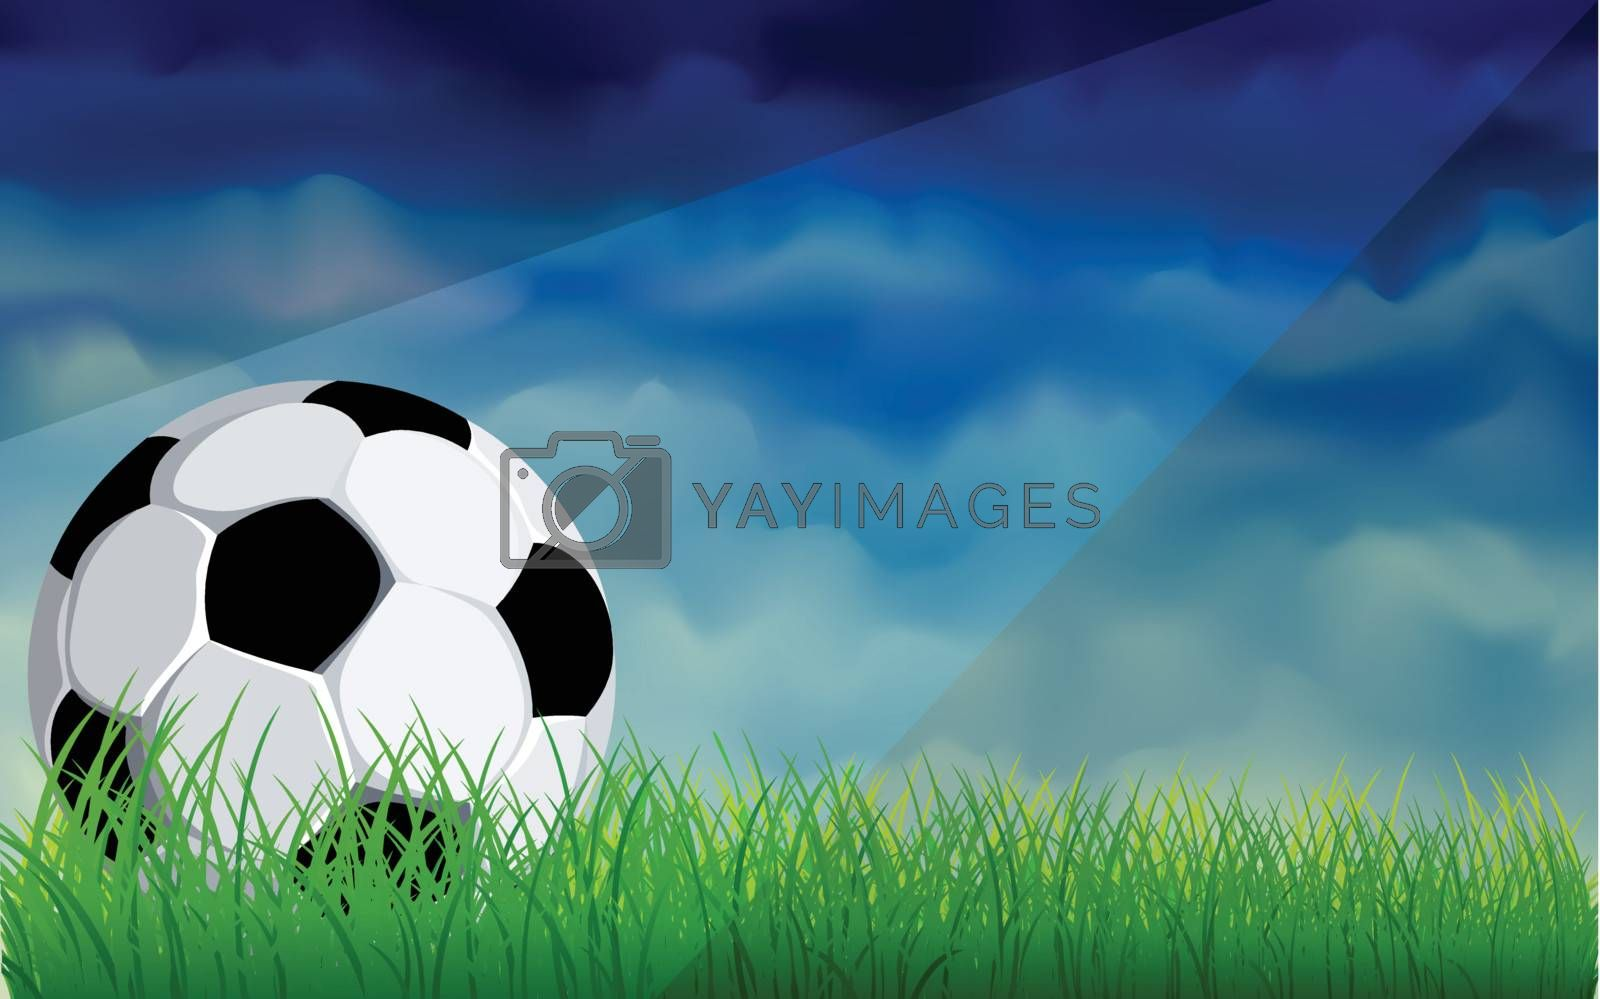 Football or soccer ball on a green lawn with dark sky